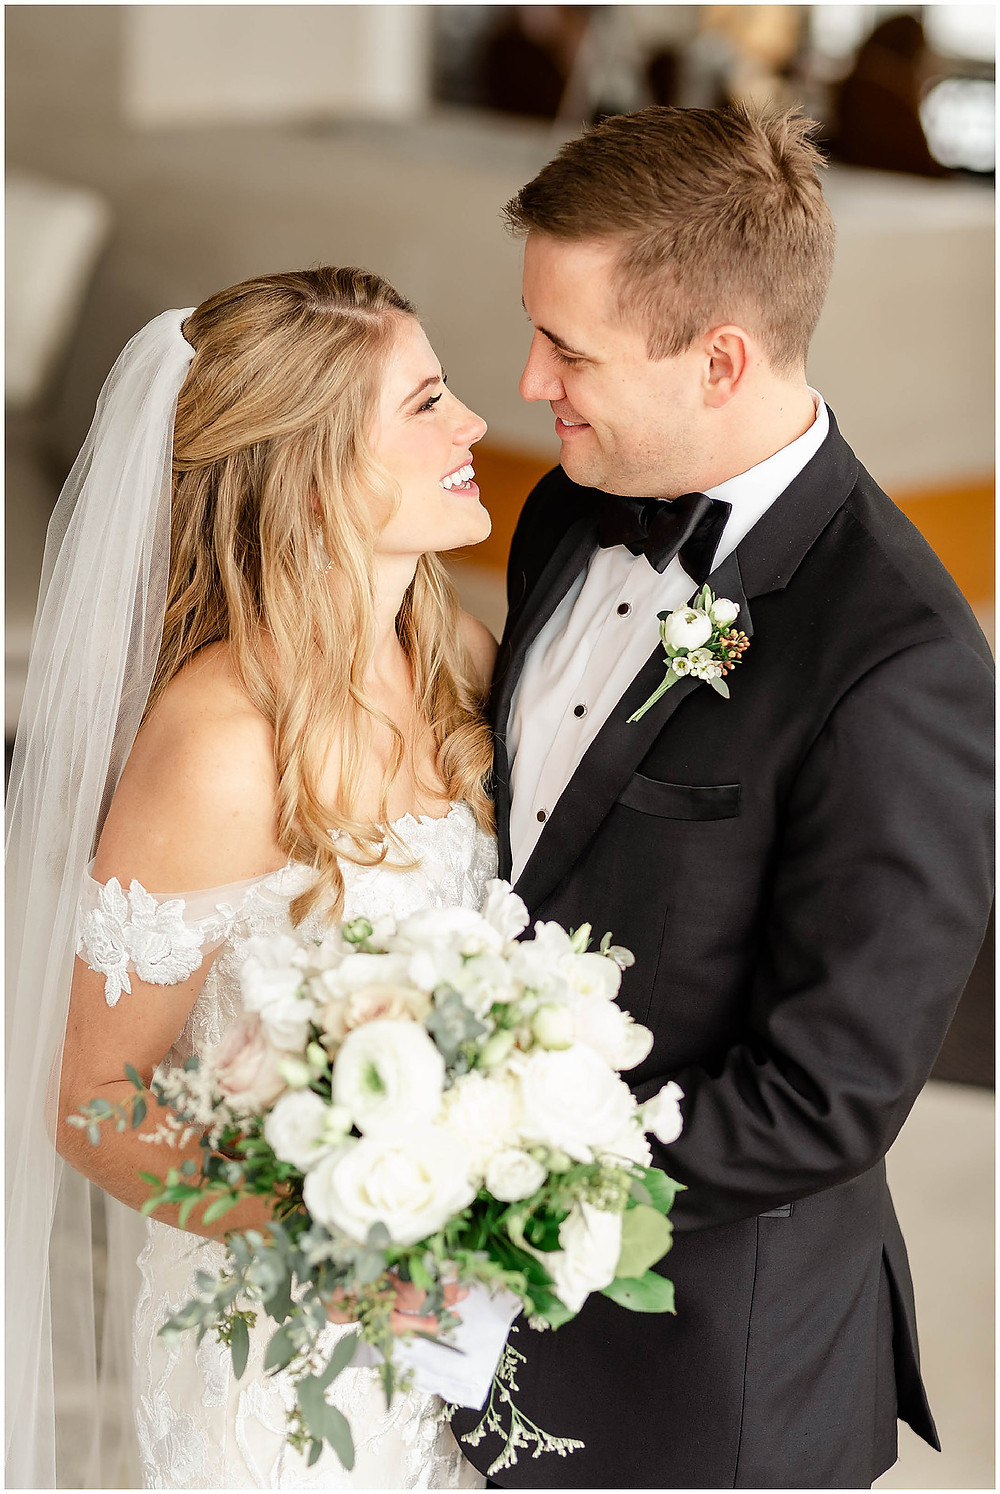 Blissful bride and groom